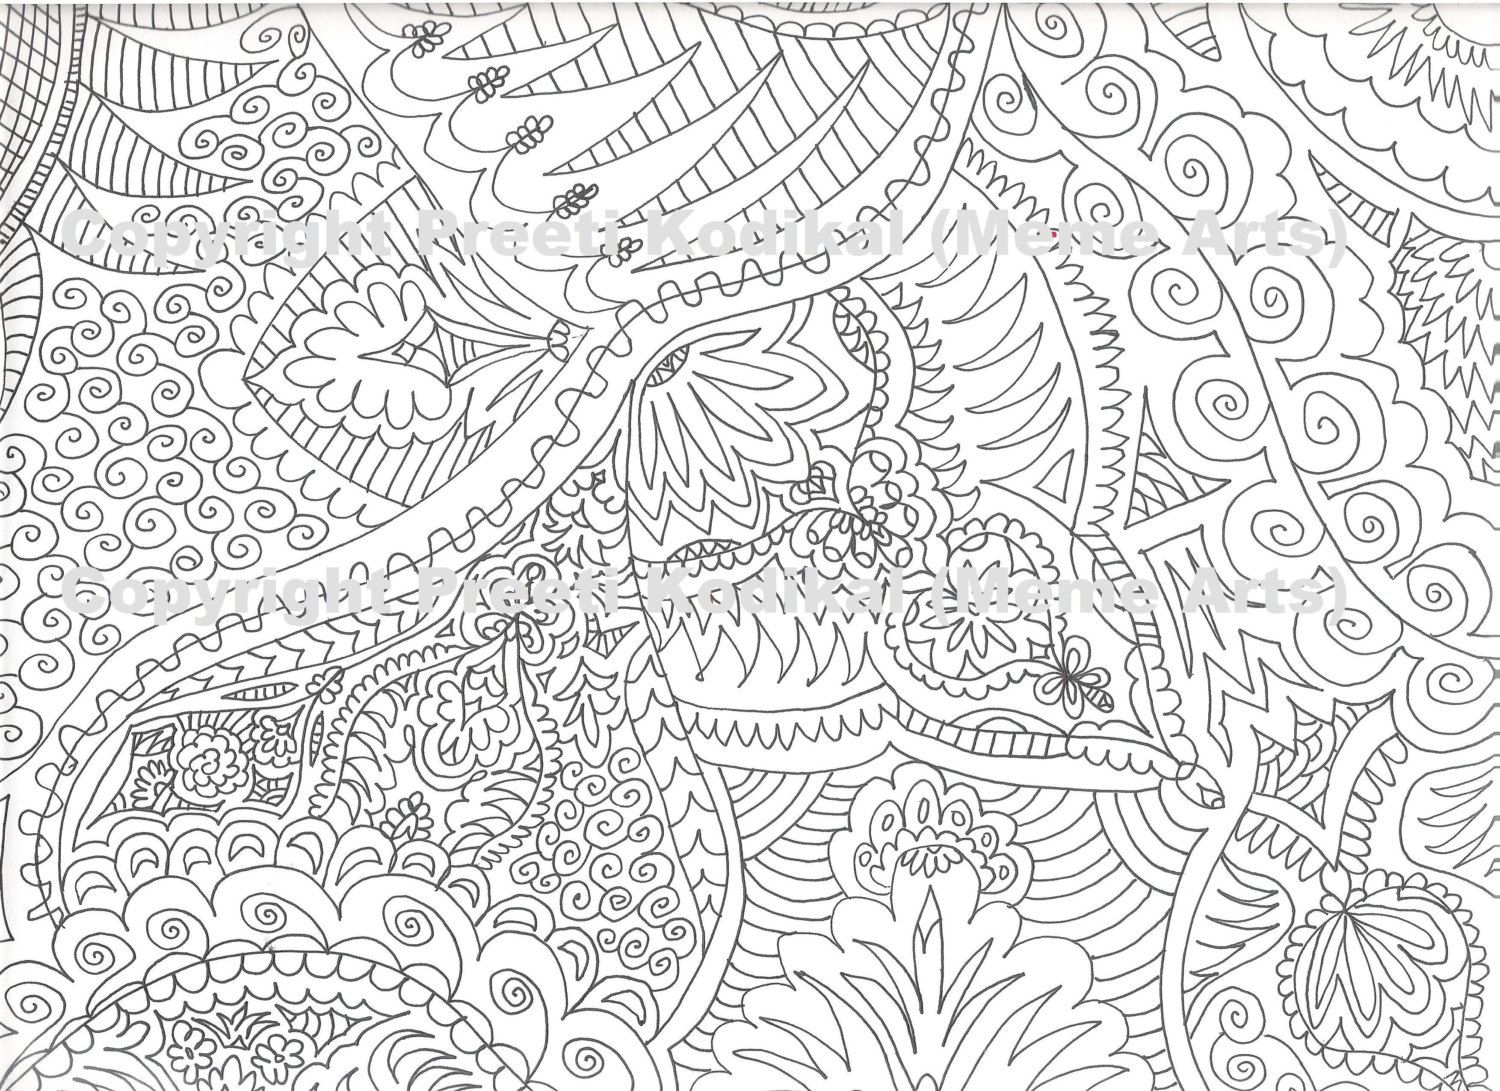 design coloring pages printable - coloring pages abstract designs easy az coloring pages